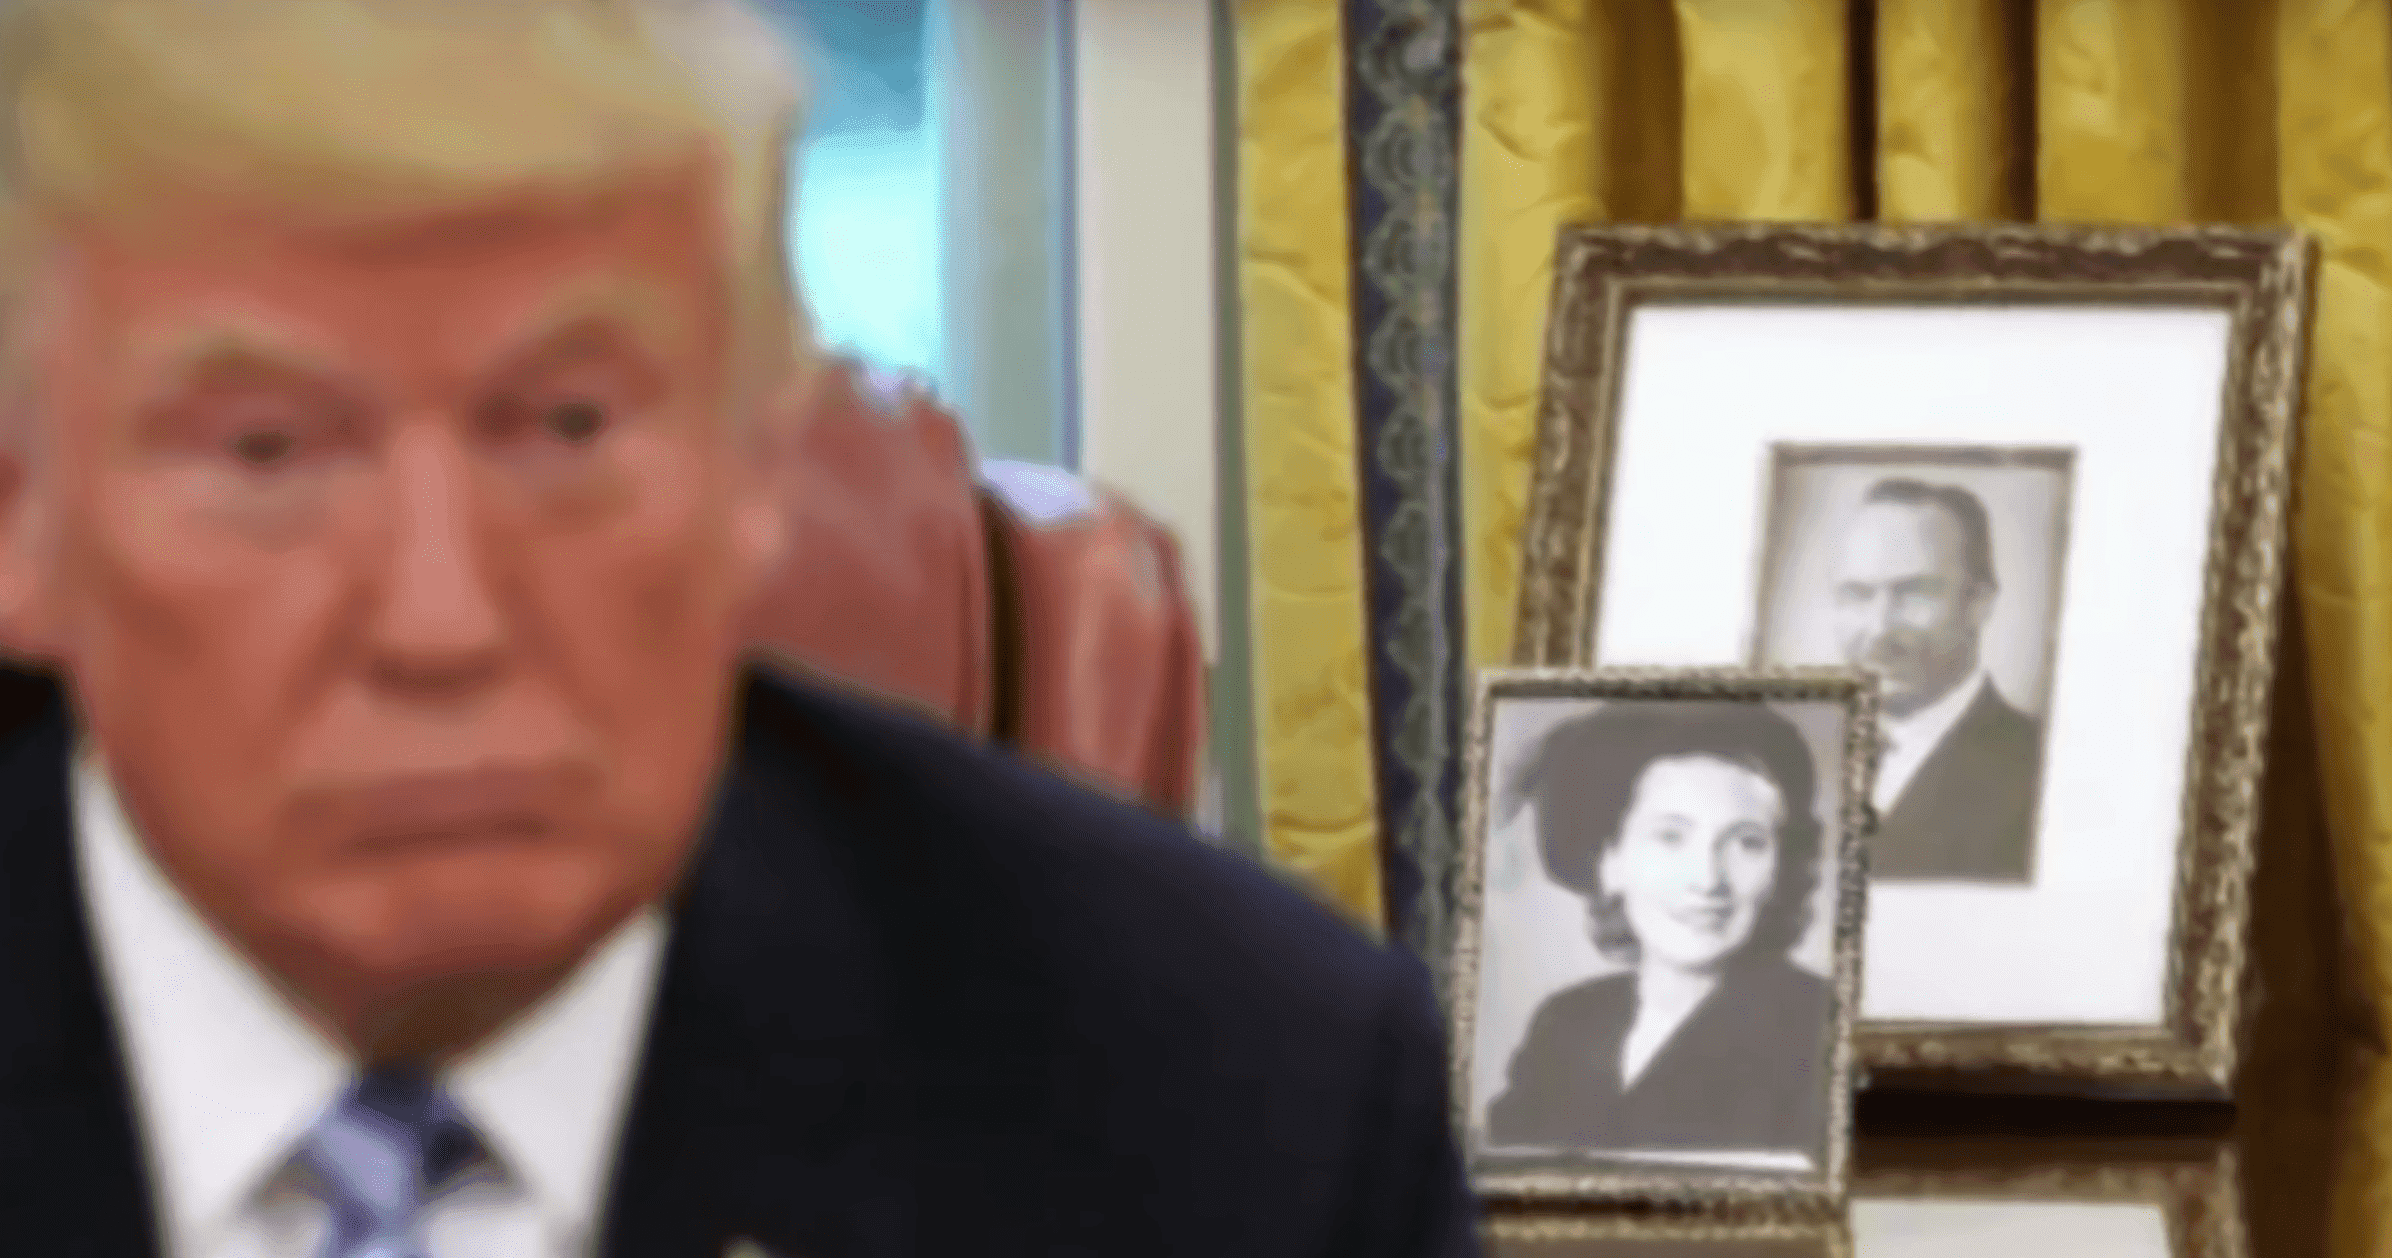 Mary and Fred's framed picture on Donald Trump's desk in the Oval office. | Source: YouTube/InsideEdition